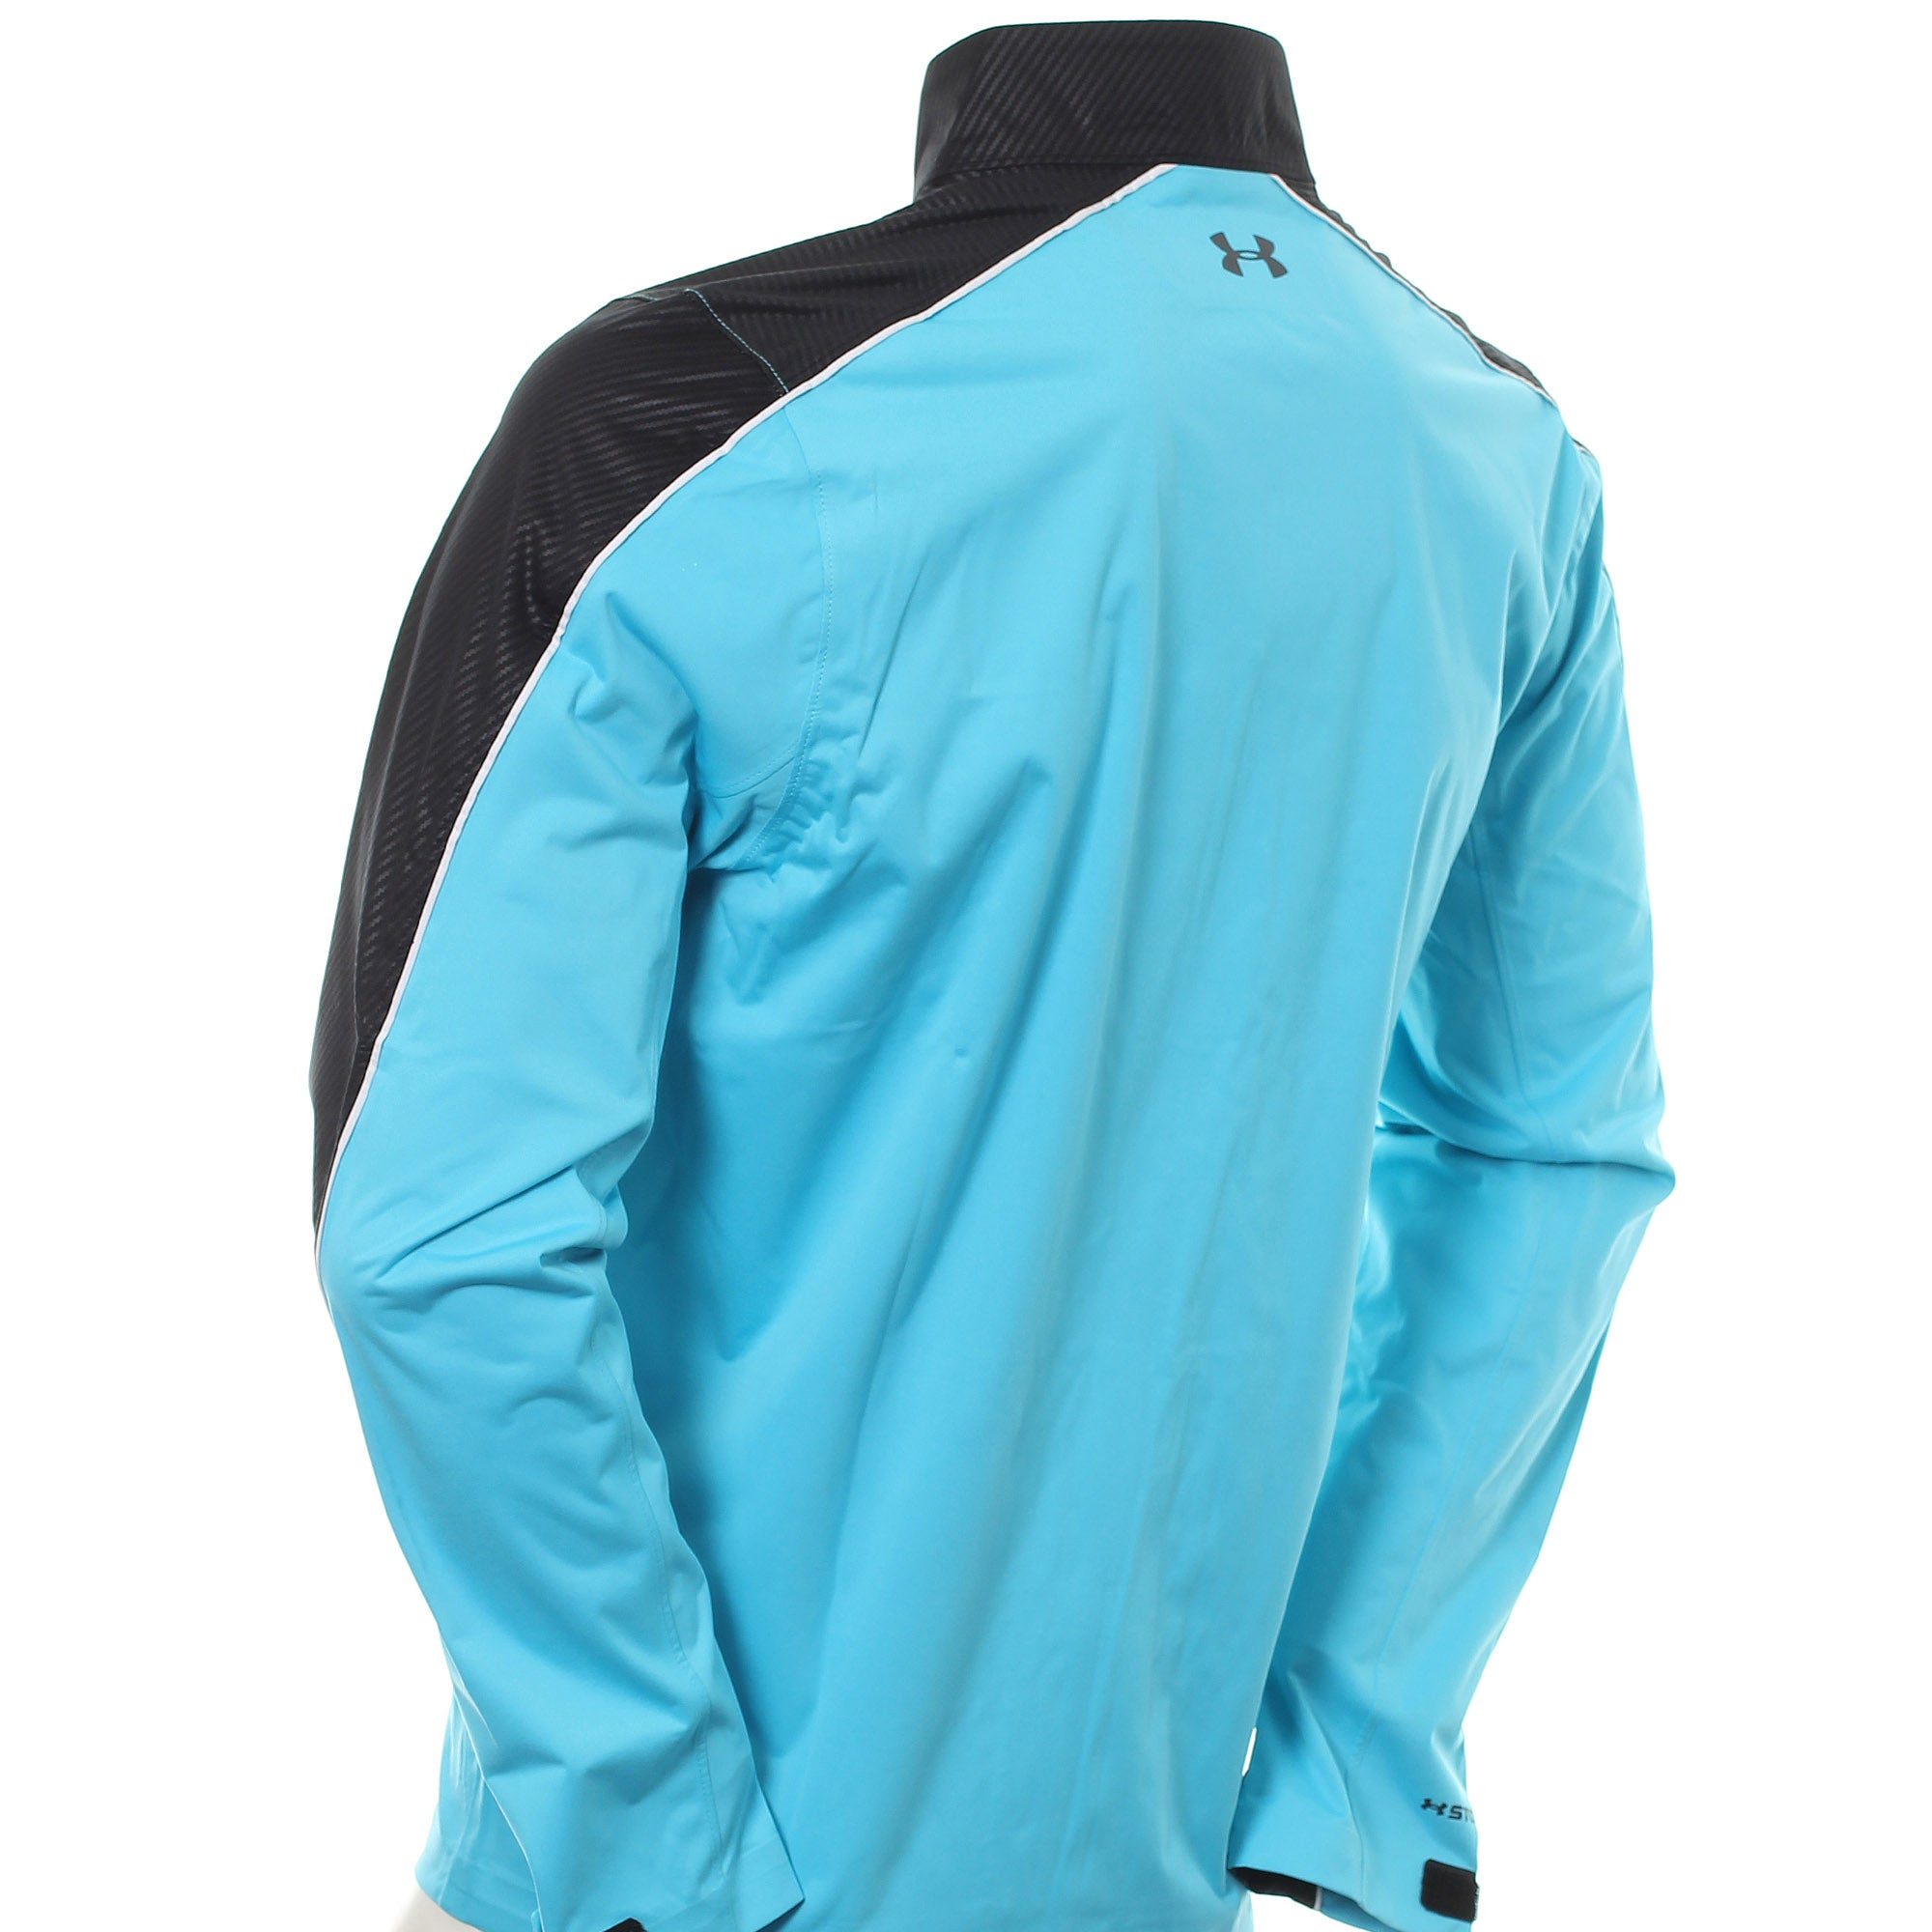 Under Armour Golf Storm Waterproof Jacket 1344085